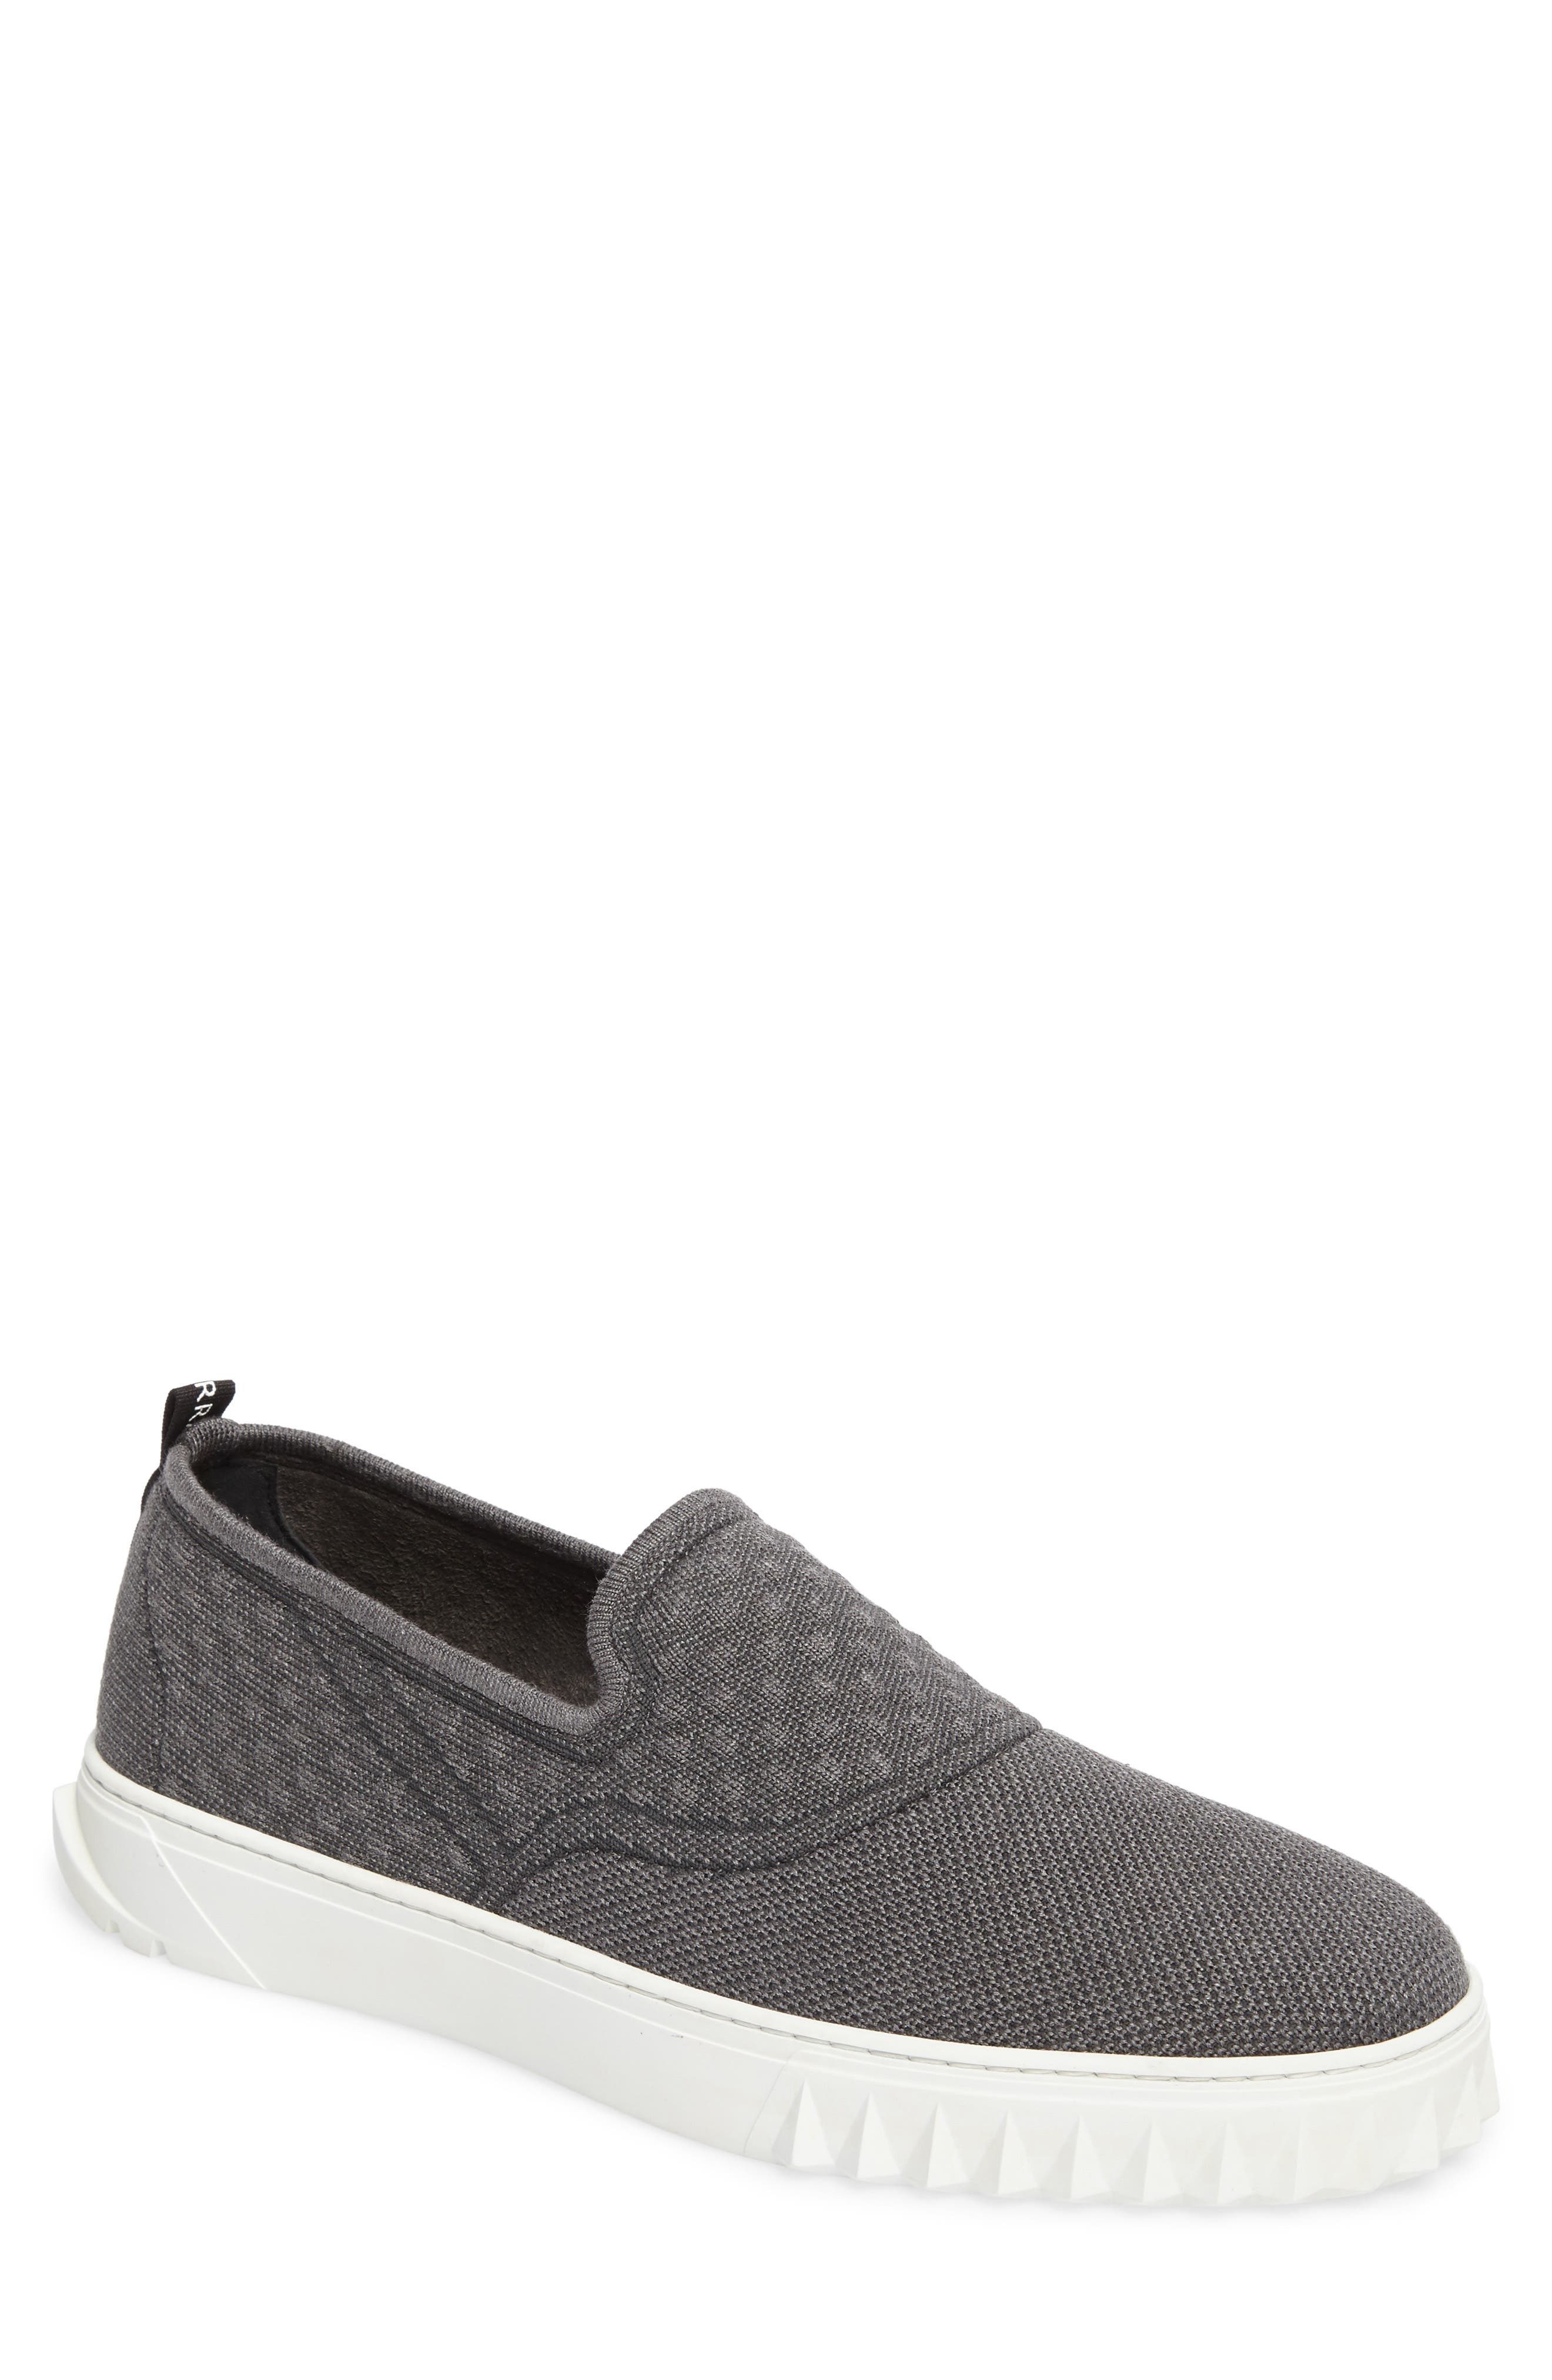 Clay Slip-On Sneaker,                             Main thumbnail 1, color,                             022